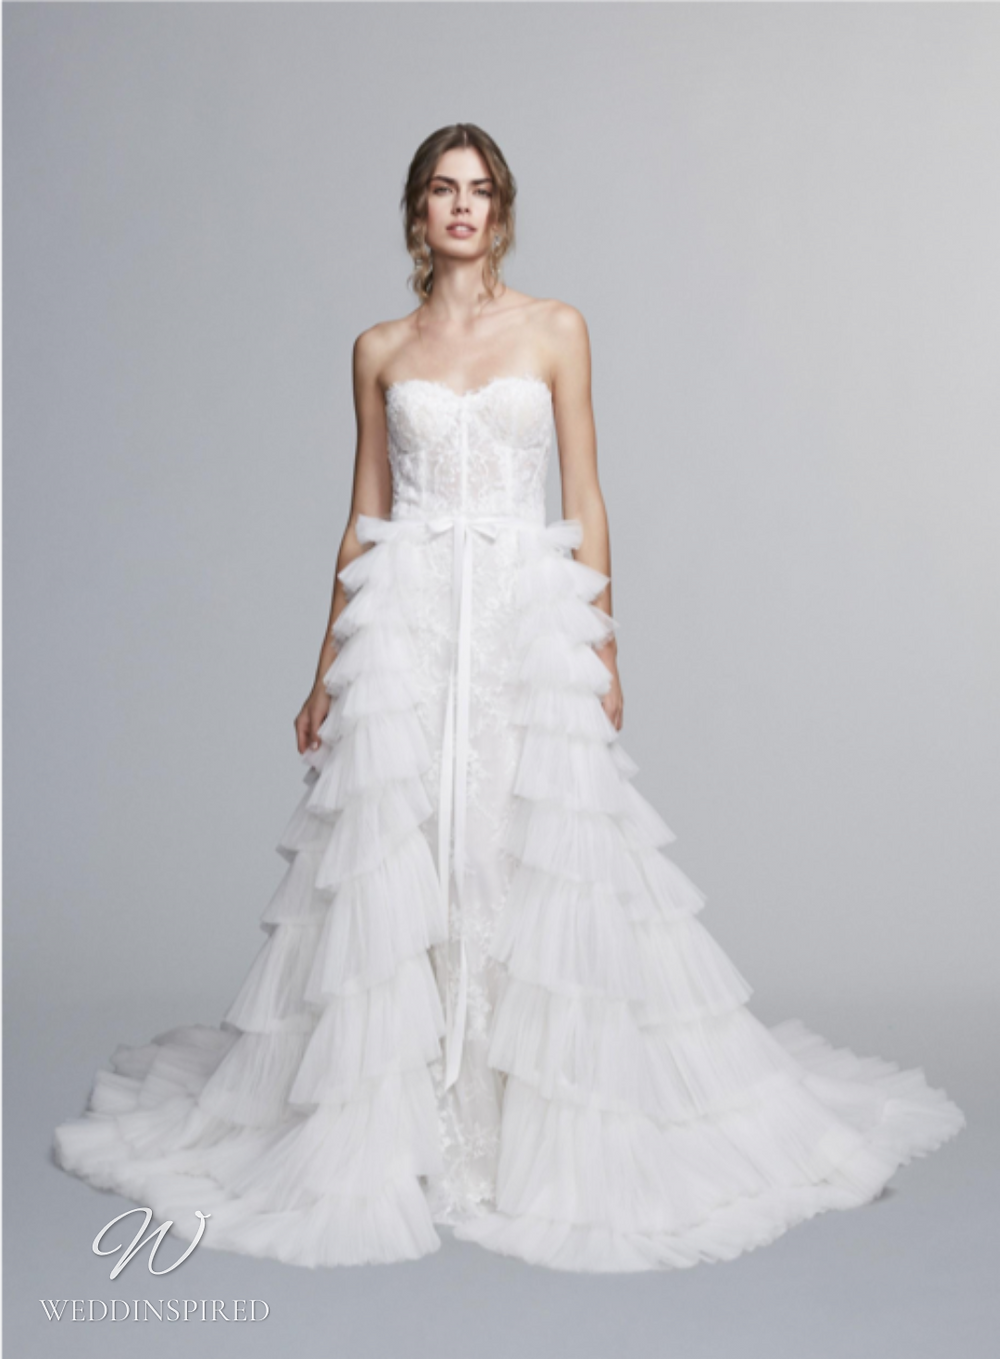 A Marchesa Notte Fall 2021 strapless lace mermaid wedding dress with a ruffle tulle detachable skirt